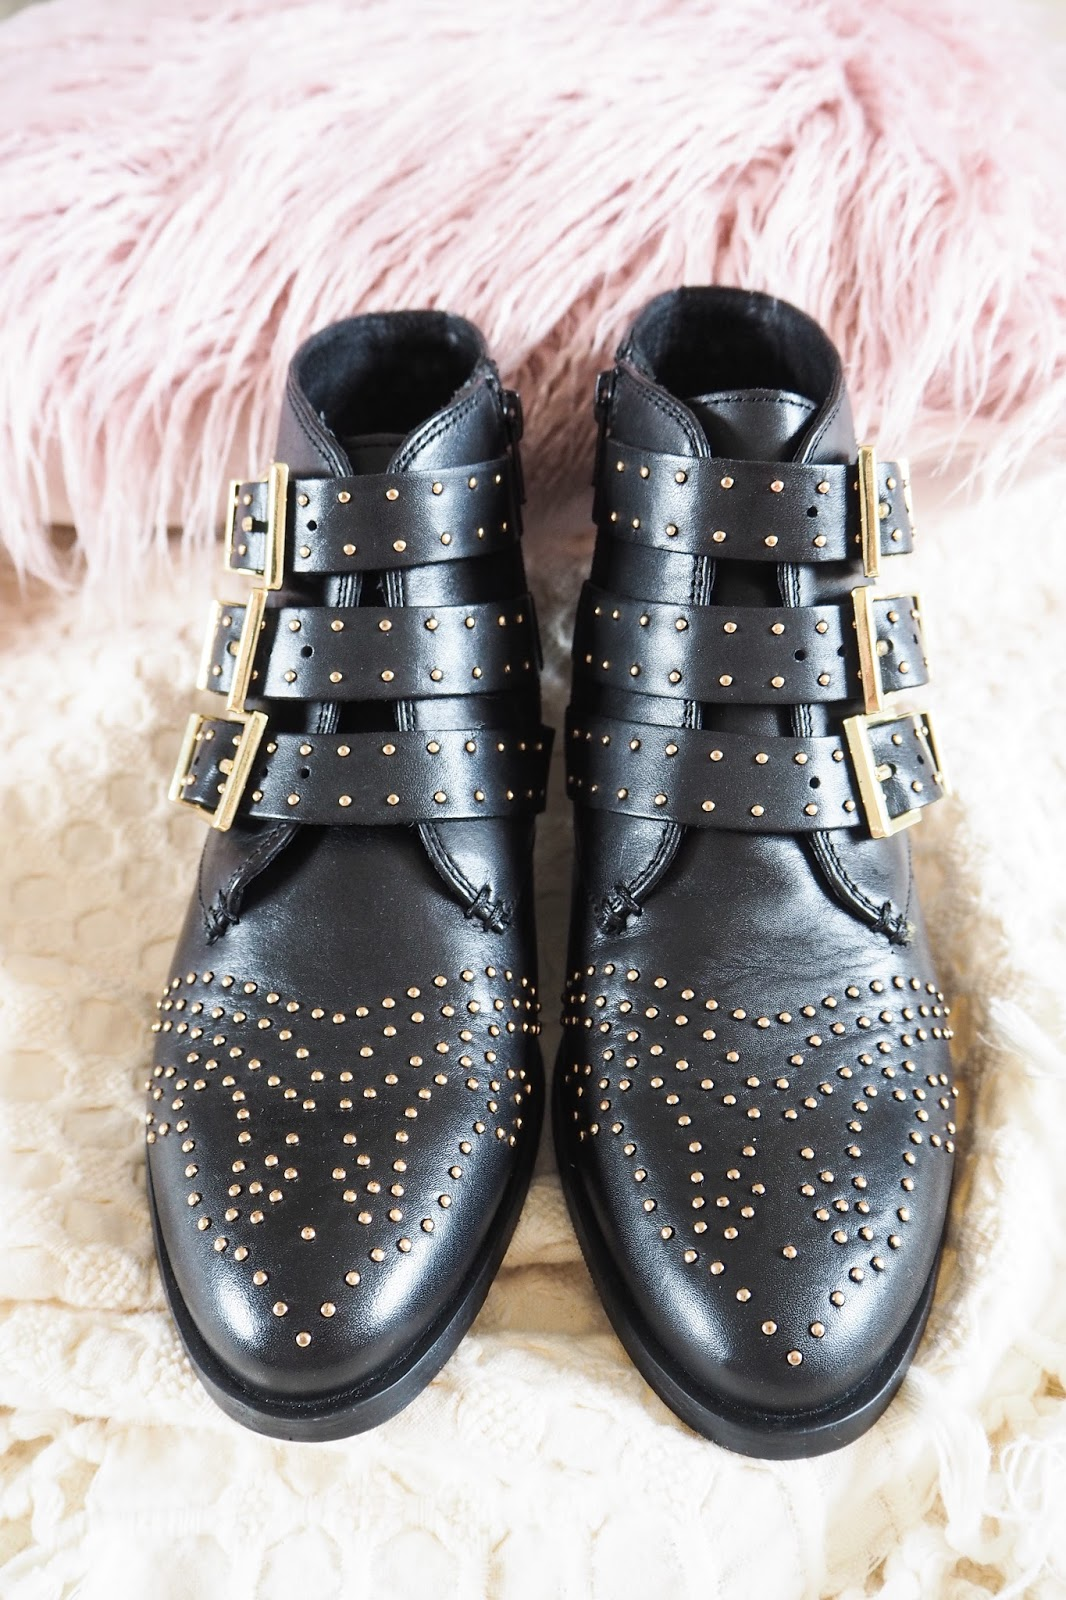 Office Lucky Charm Boots which are dupes for the Chloe Susanna Boots